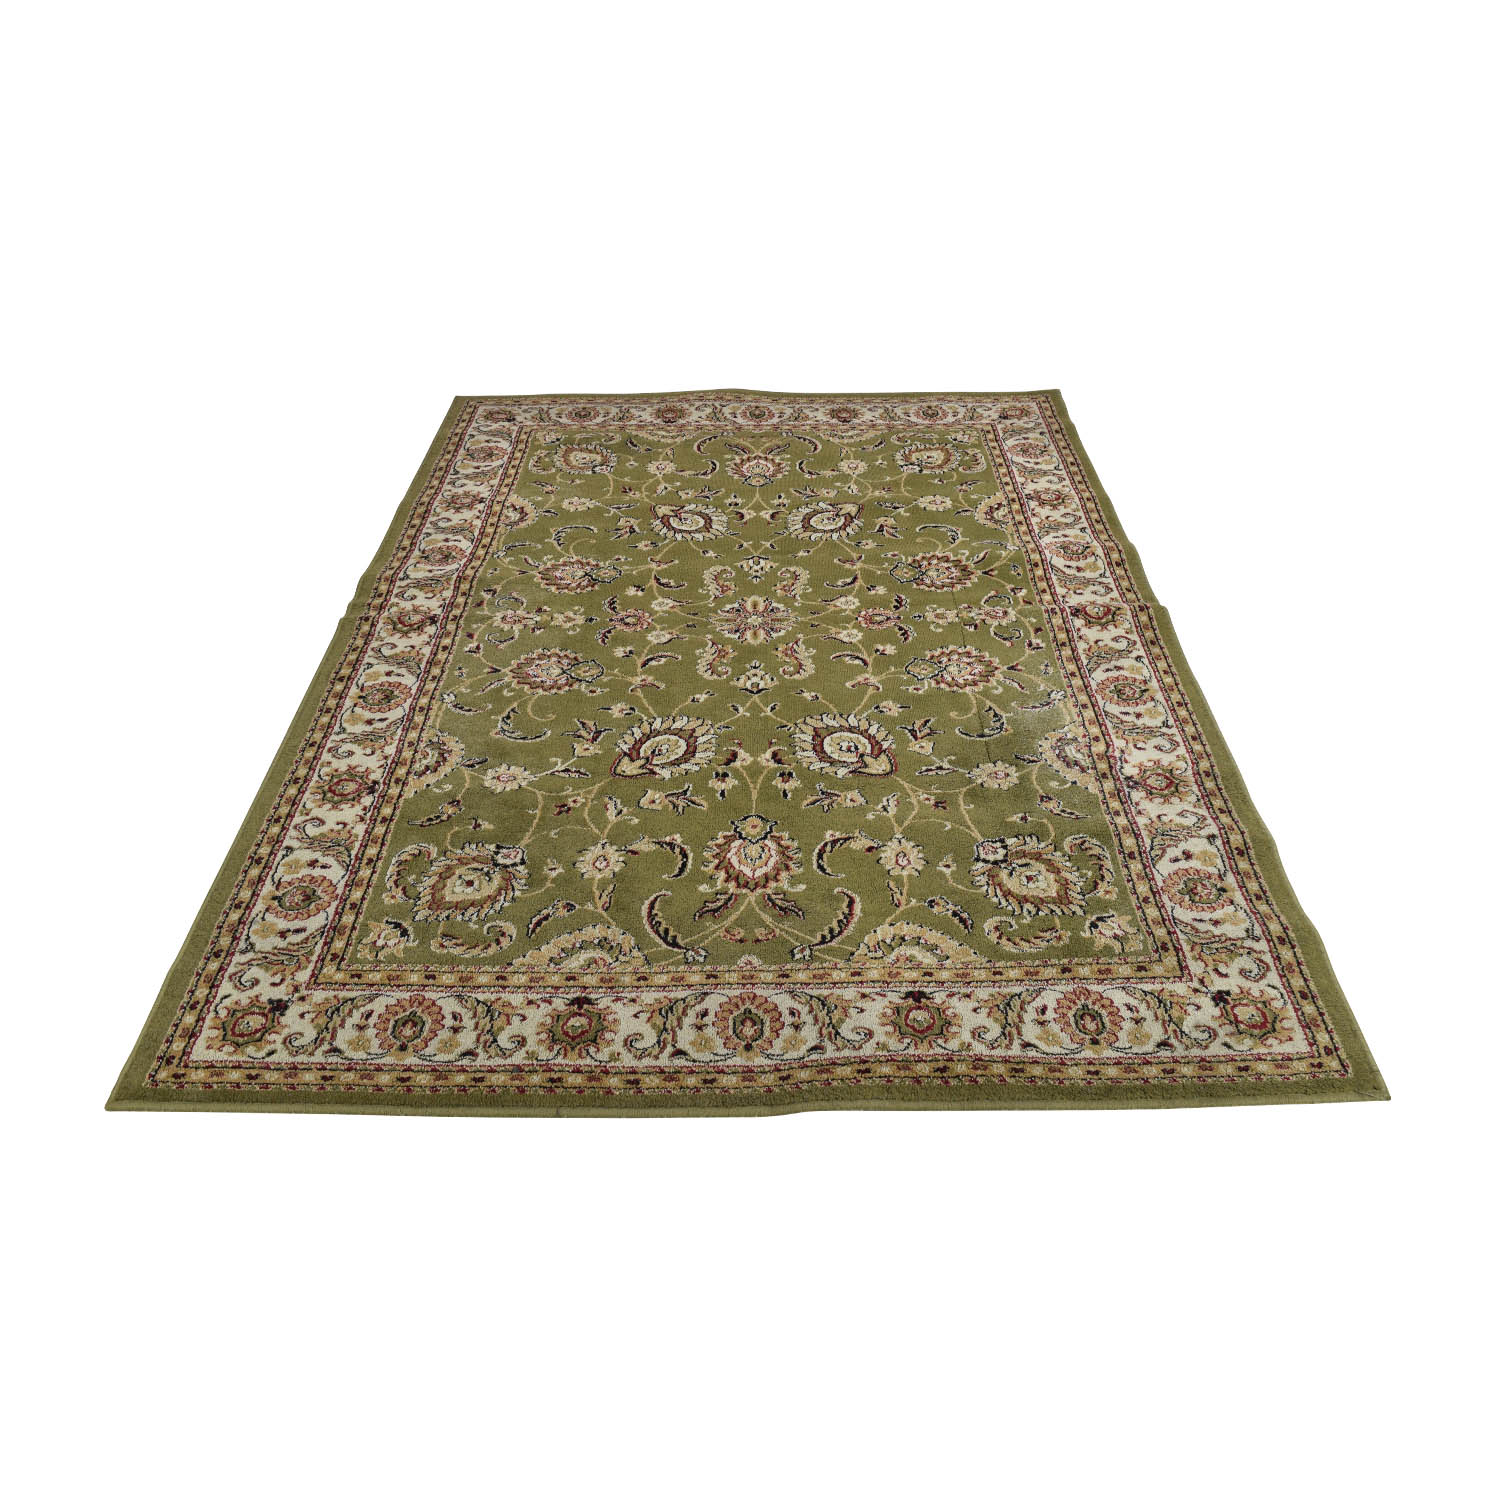 Home Goods Area Rugs Home Goods Rugs With Home Goods Area